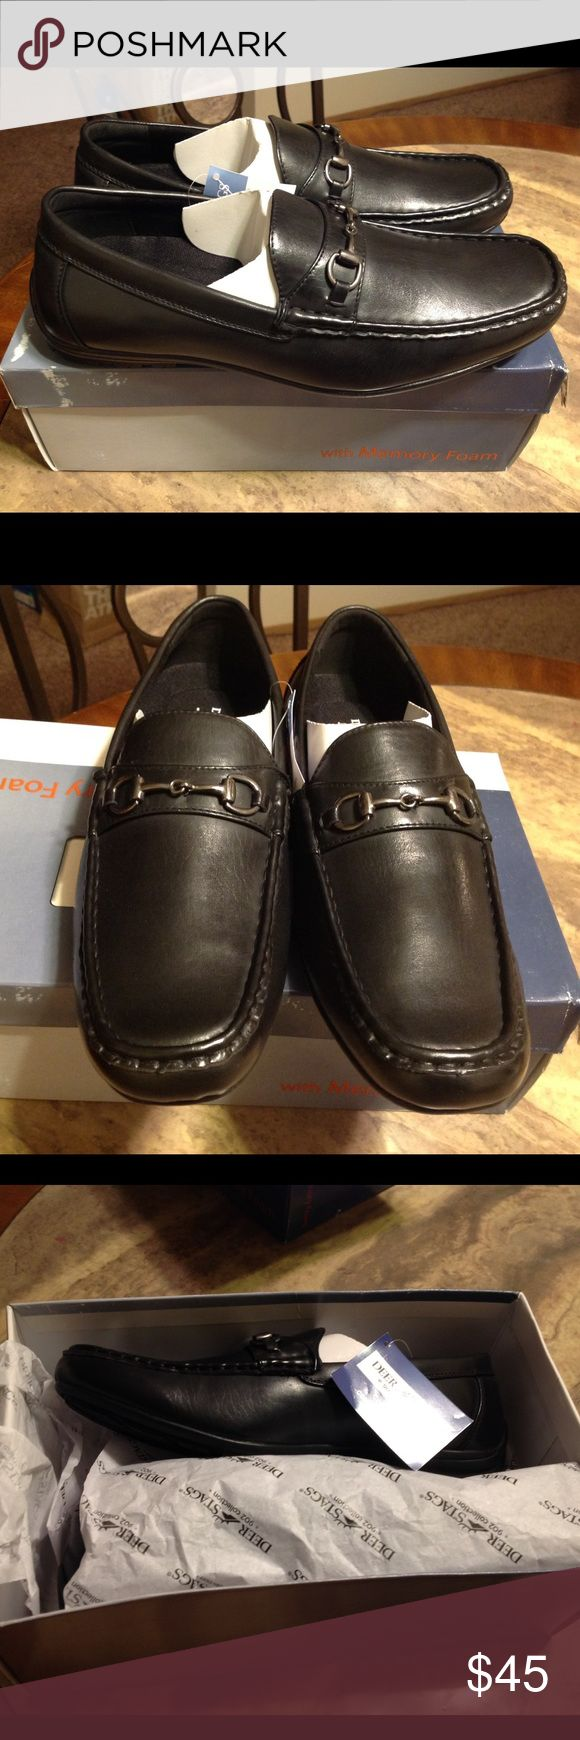 Deer Stags Manual Bit Loafers - Memory Foam Leather shoes with removal insoles.  Memory form and heel 1inch.  Brand new never worn with tags in the box. Deer Stags Shoes Loafers & Slip-Ons